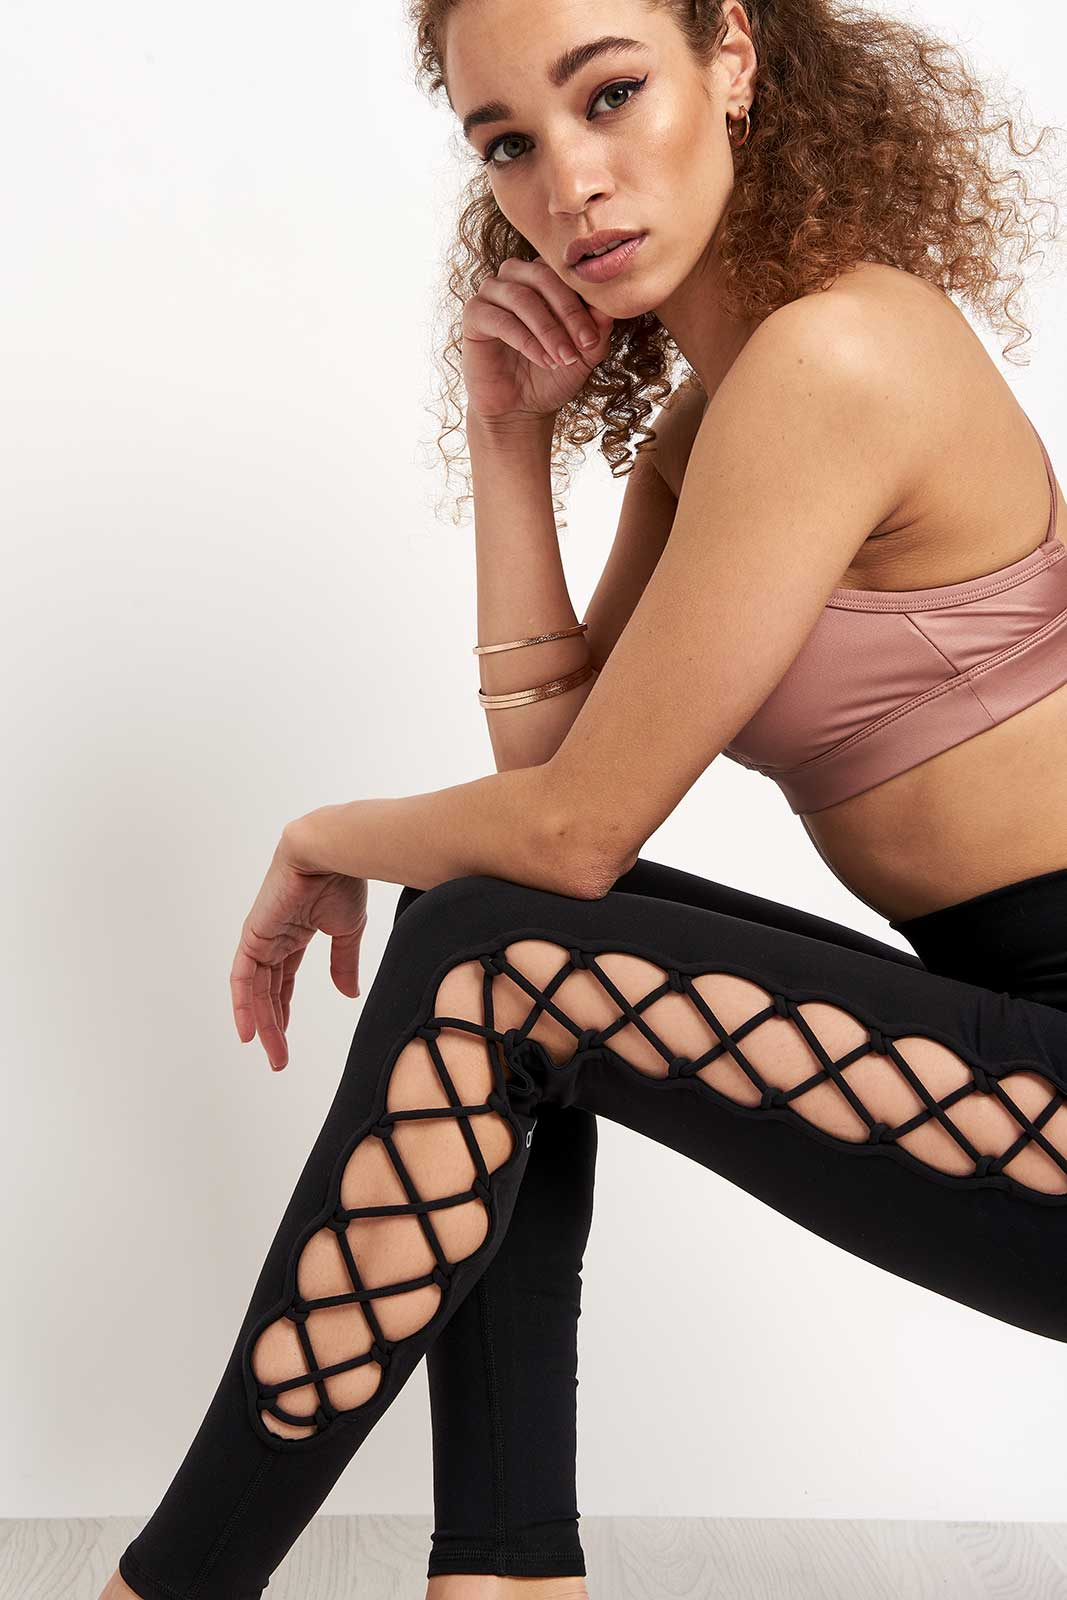 Alo Yoga Interlace Legging - Black image 3 - The Sports Edit